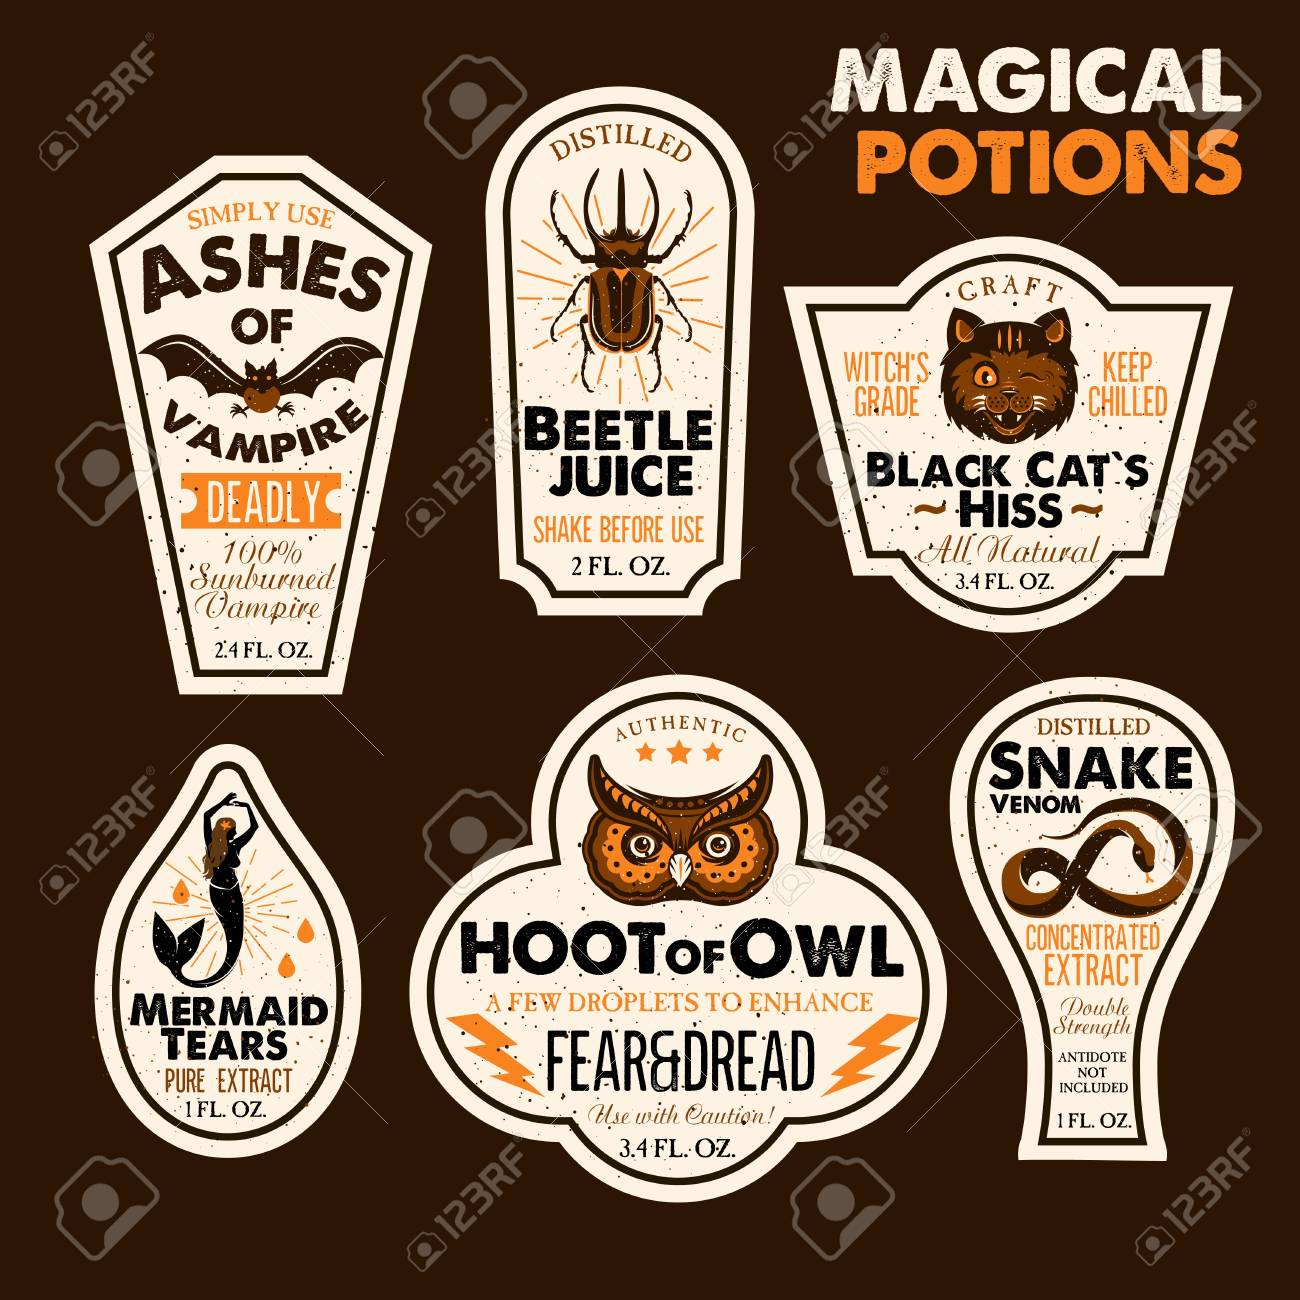 Halloween Bottle Labels Potion Labels Vector Illustration Royalty Free Cliparts Vectors And Stock Illustration Image 94979684